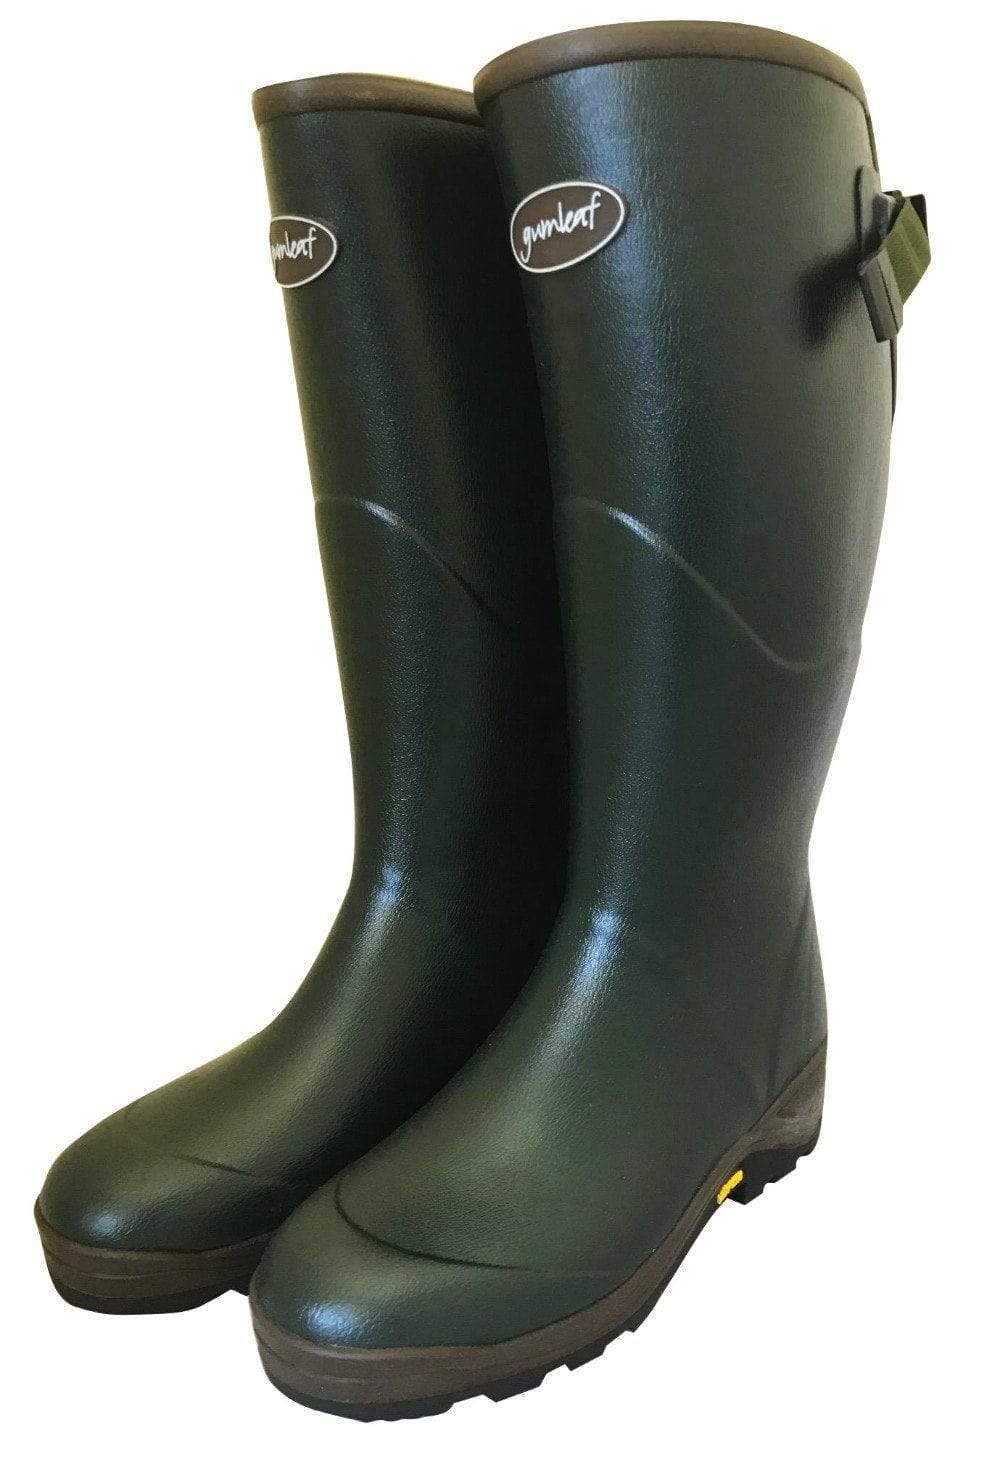 Hard Wearing Wide Fit Green Wellies by Gumleaf - Wide Calf Wellies for Women